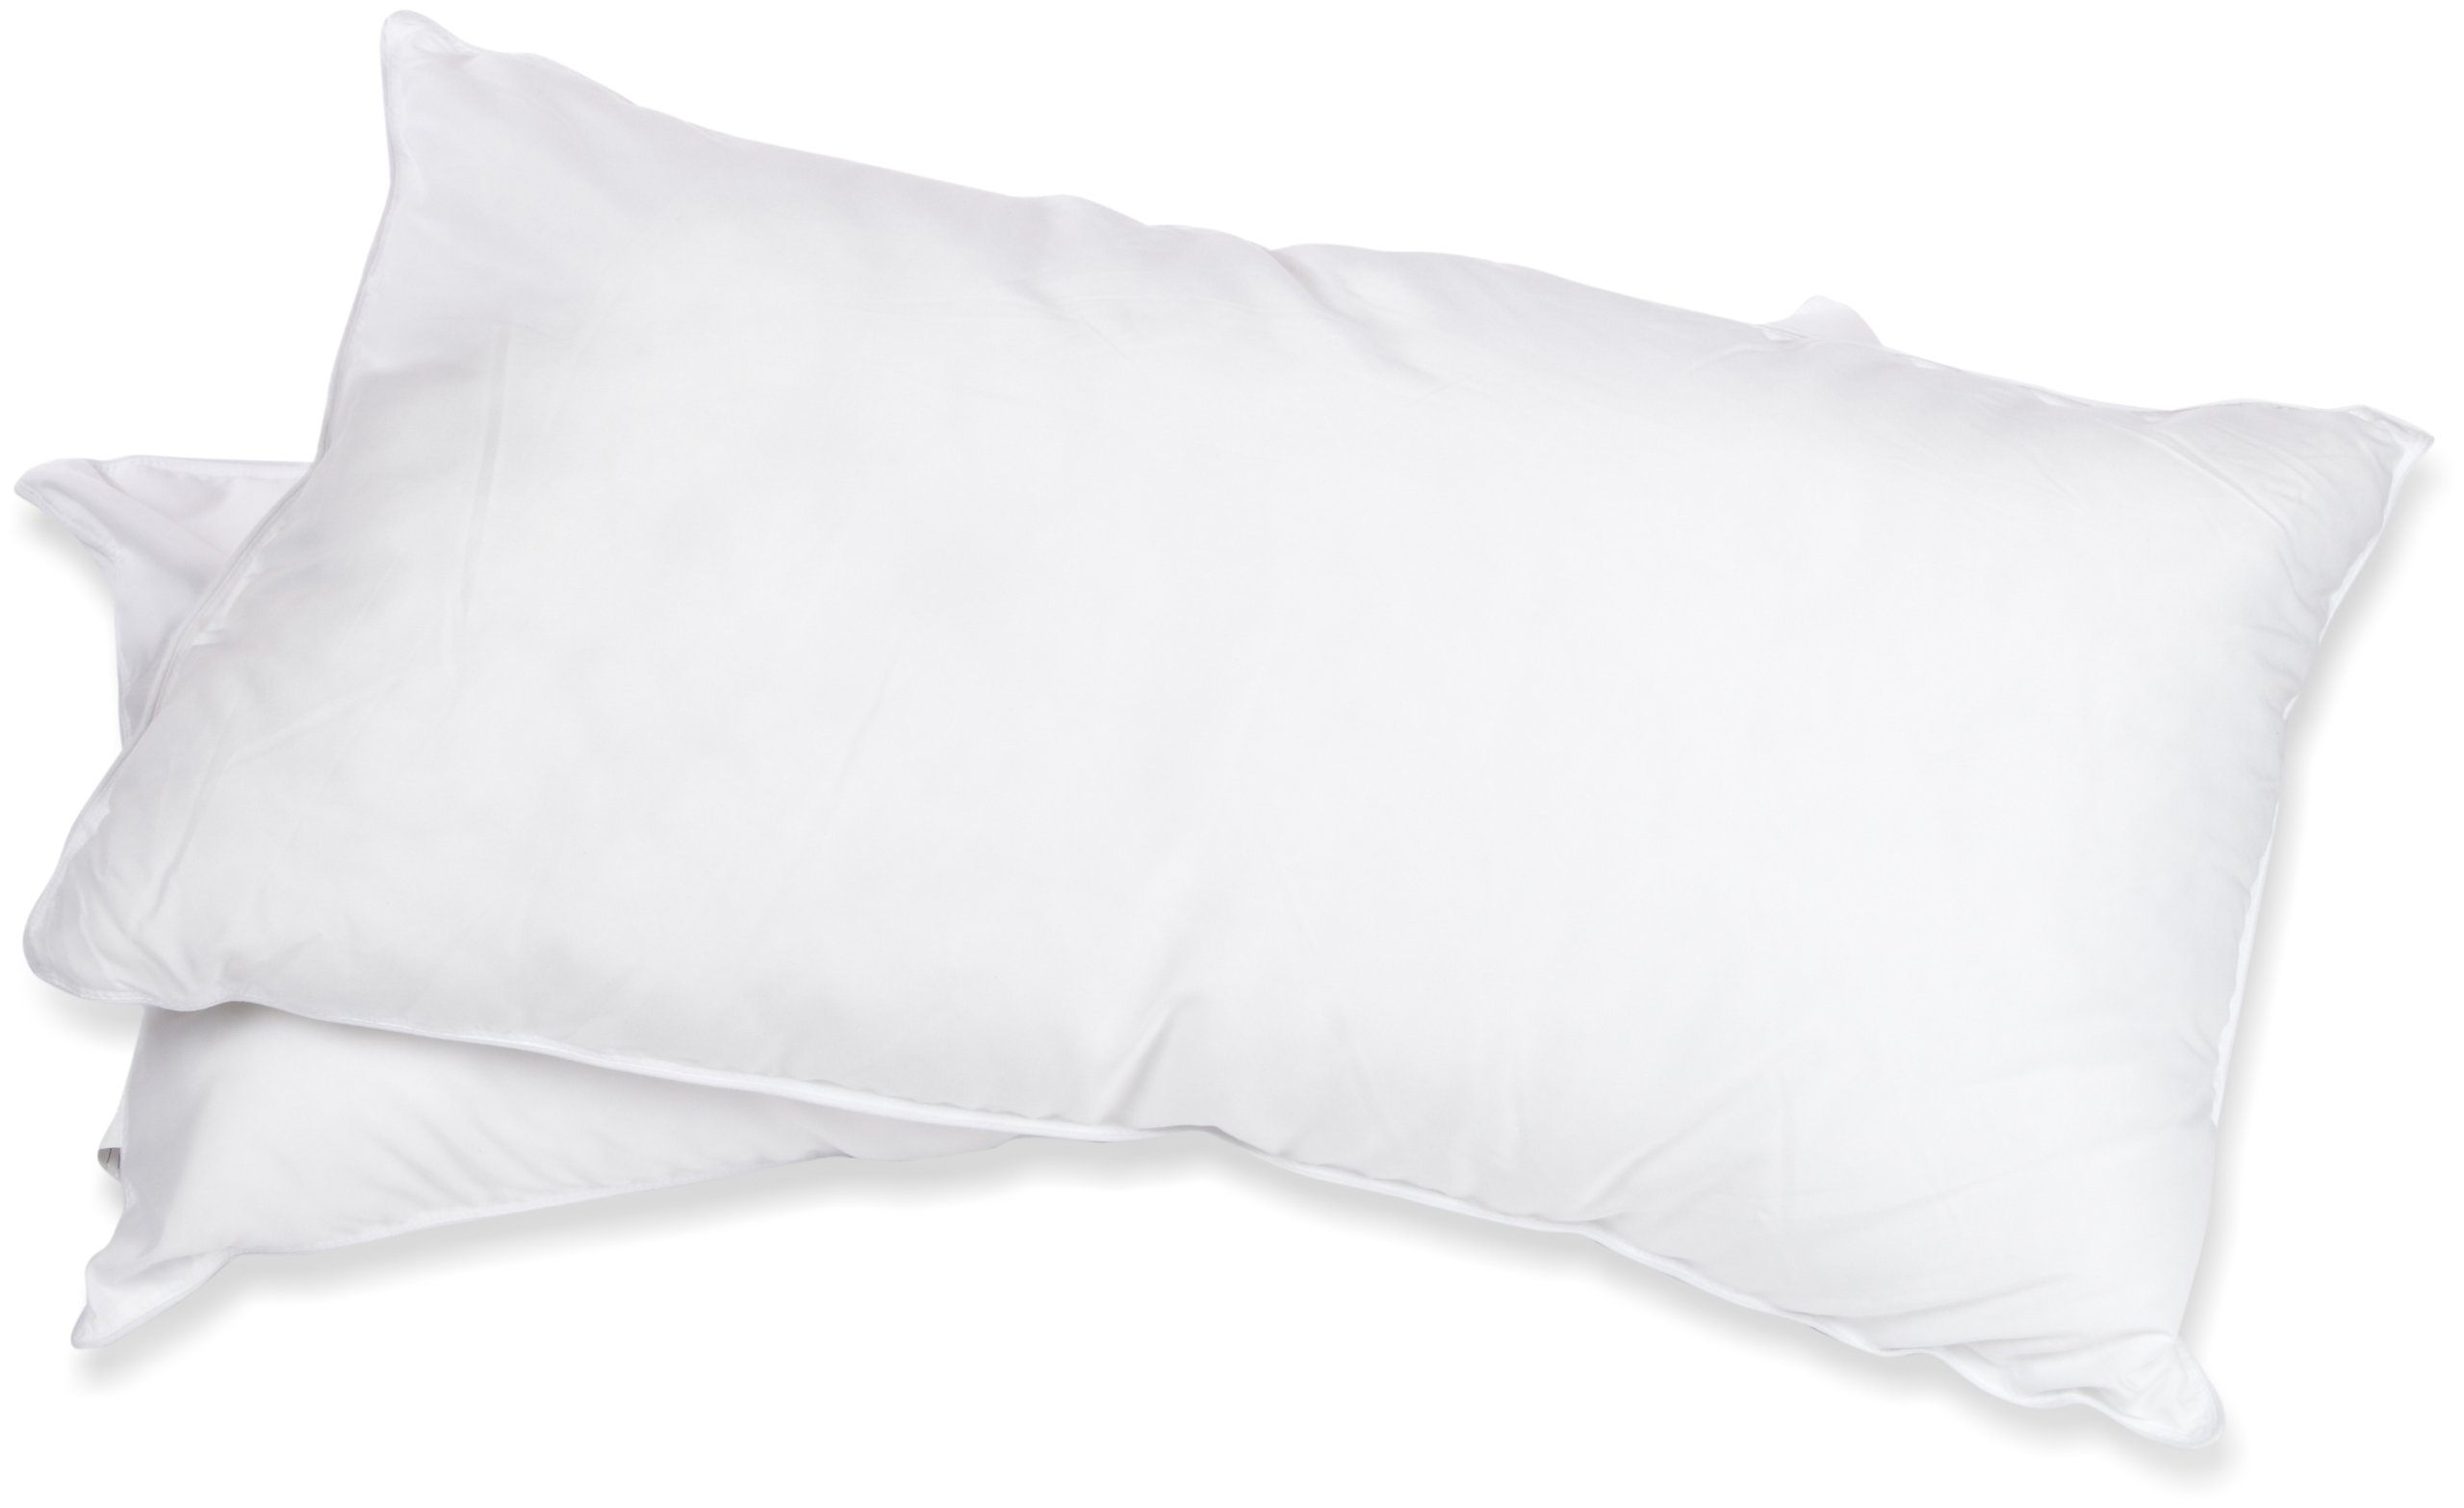 Superior White Down Alternative Pillow 2-Pack, Premium Hypoallergenic Microfiber Fill, Medium Density for Back, Stomach, and Side Sleepers - King Size, Solid White